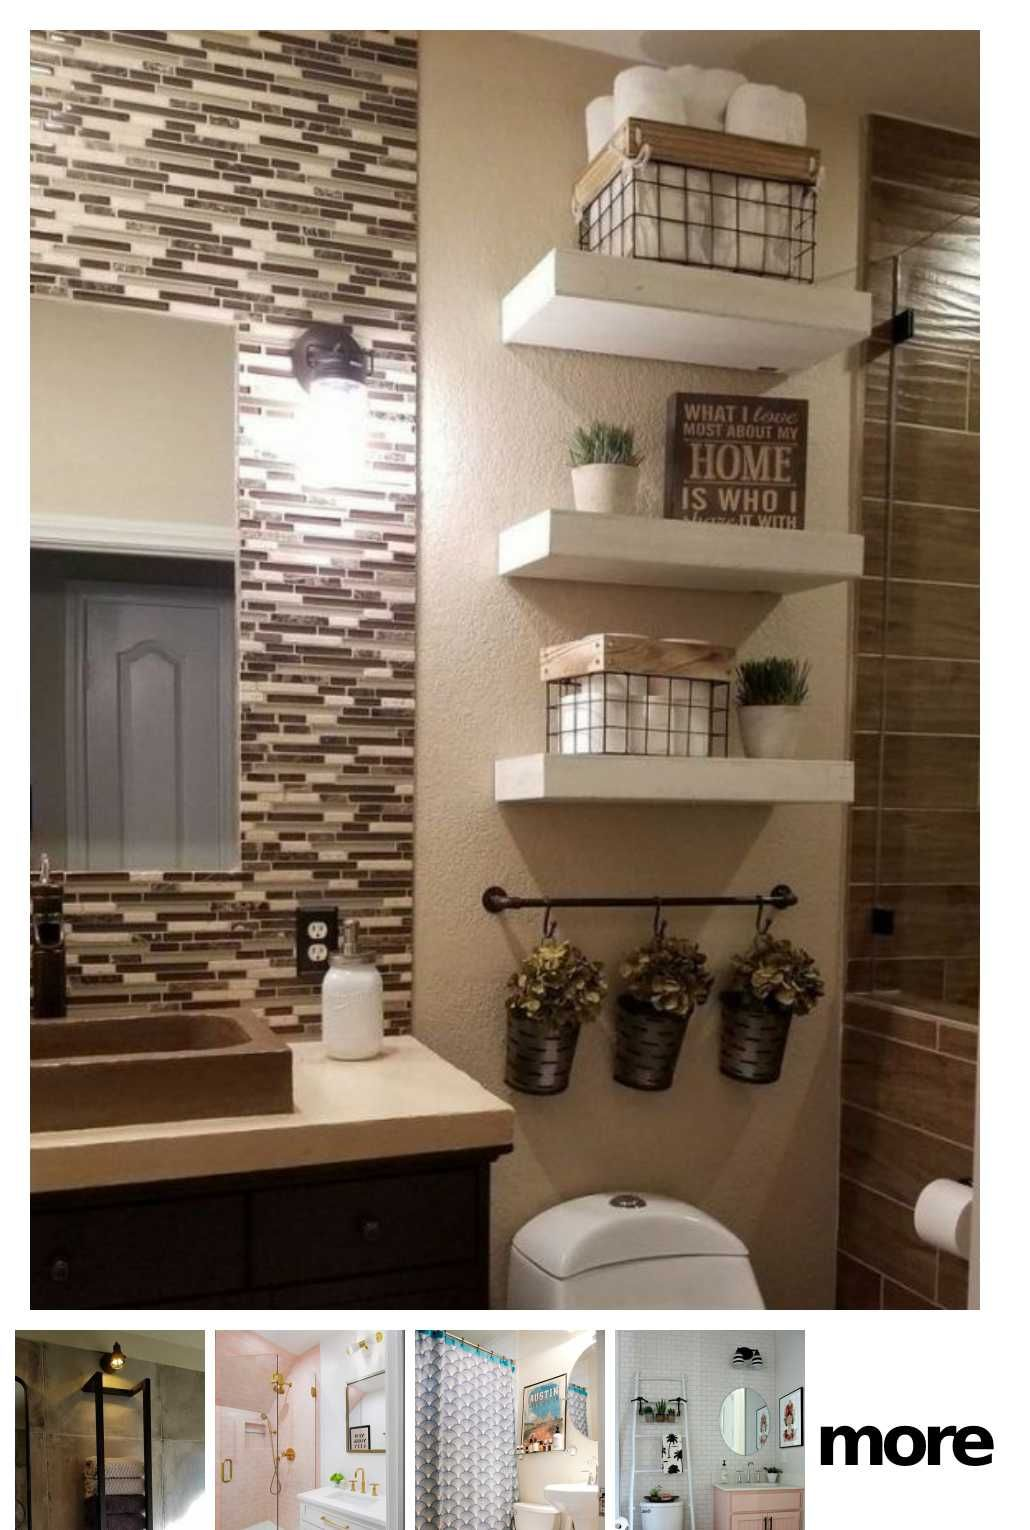 30 Best Bathroom Remodel Ideas On A Budget That Will Inspire You In 2020 Amazing Bathrooms Bathrooms Remodel Small Bathroom Remodel